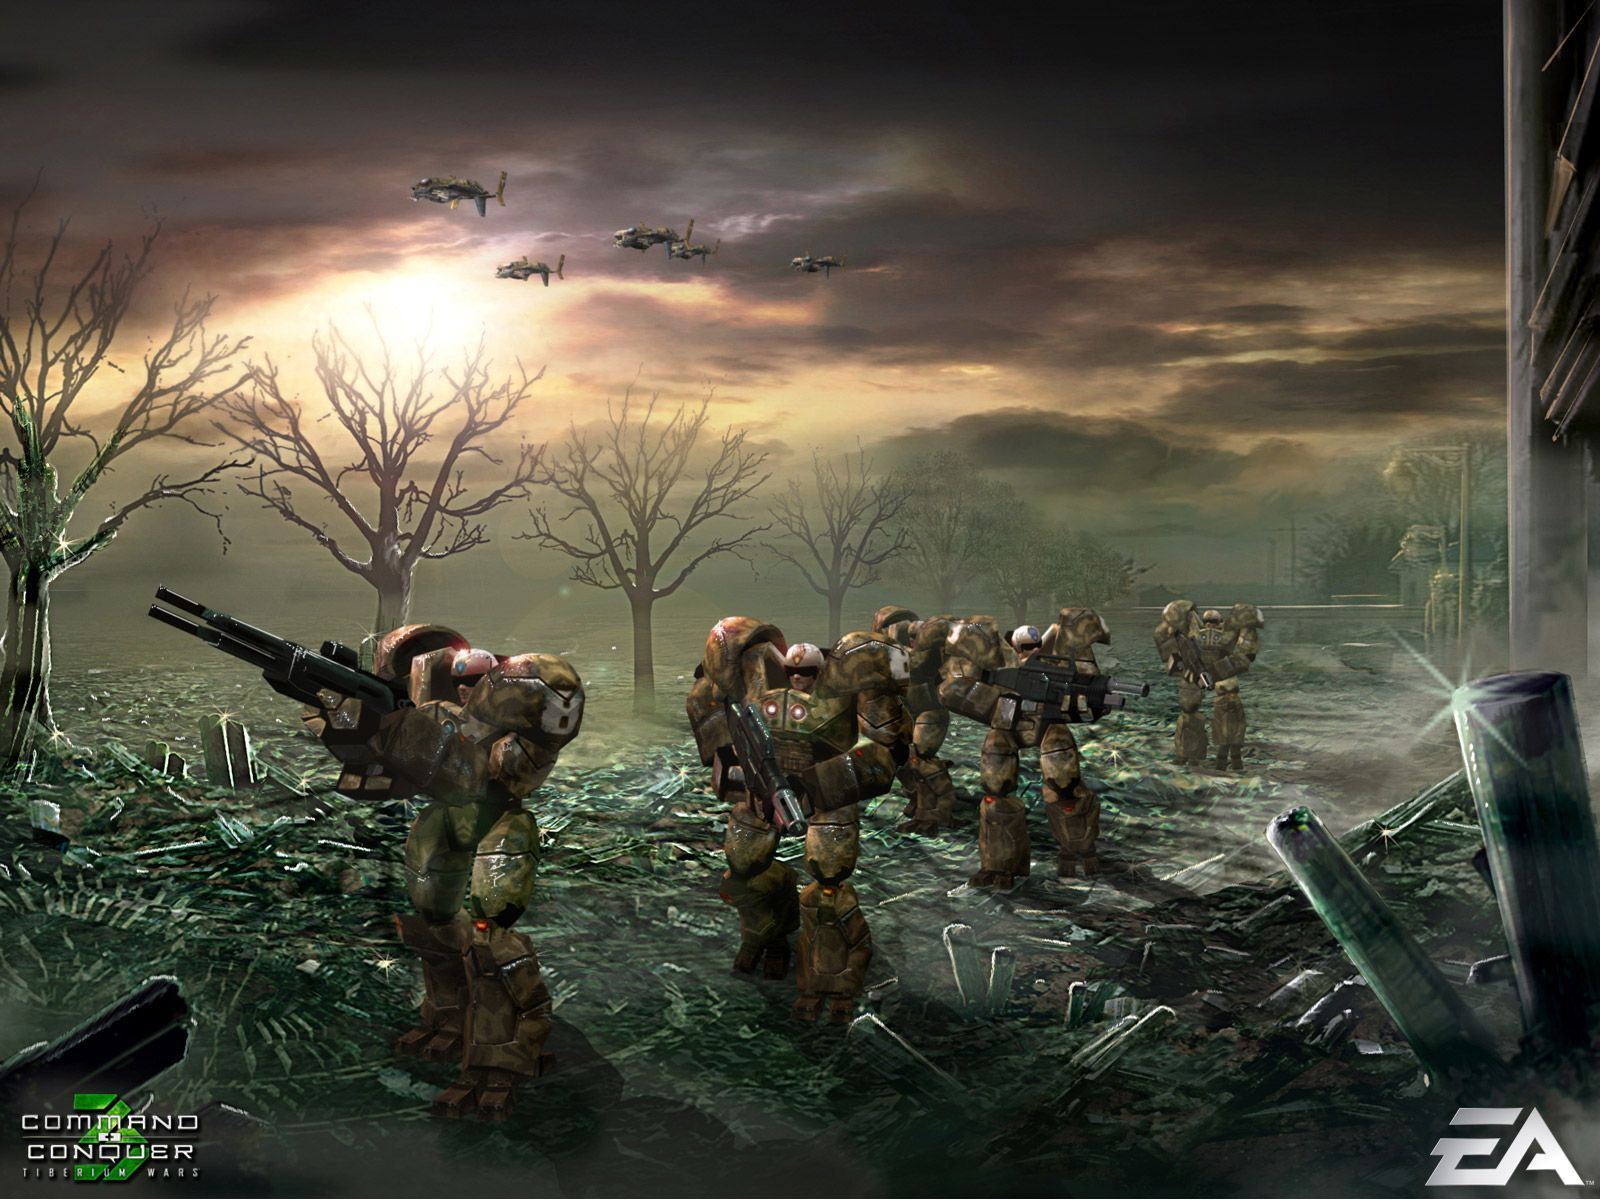 Command-Conquer-Kanes-WrathTiberium-Wars-Repack-wallpaper-wp3803936